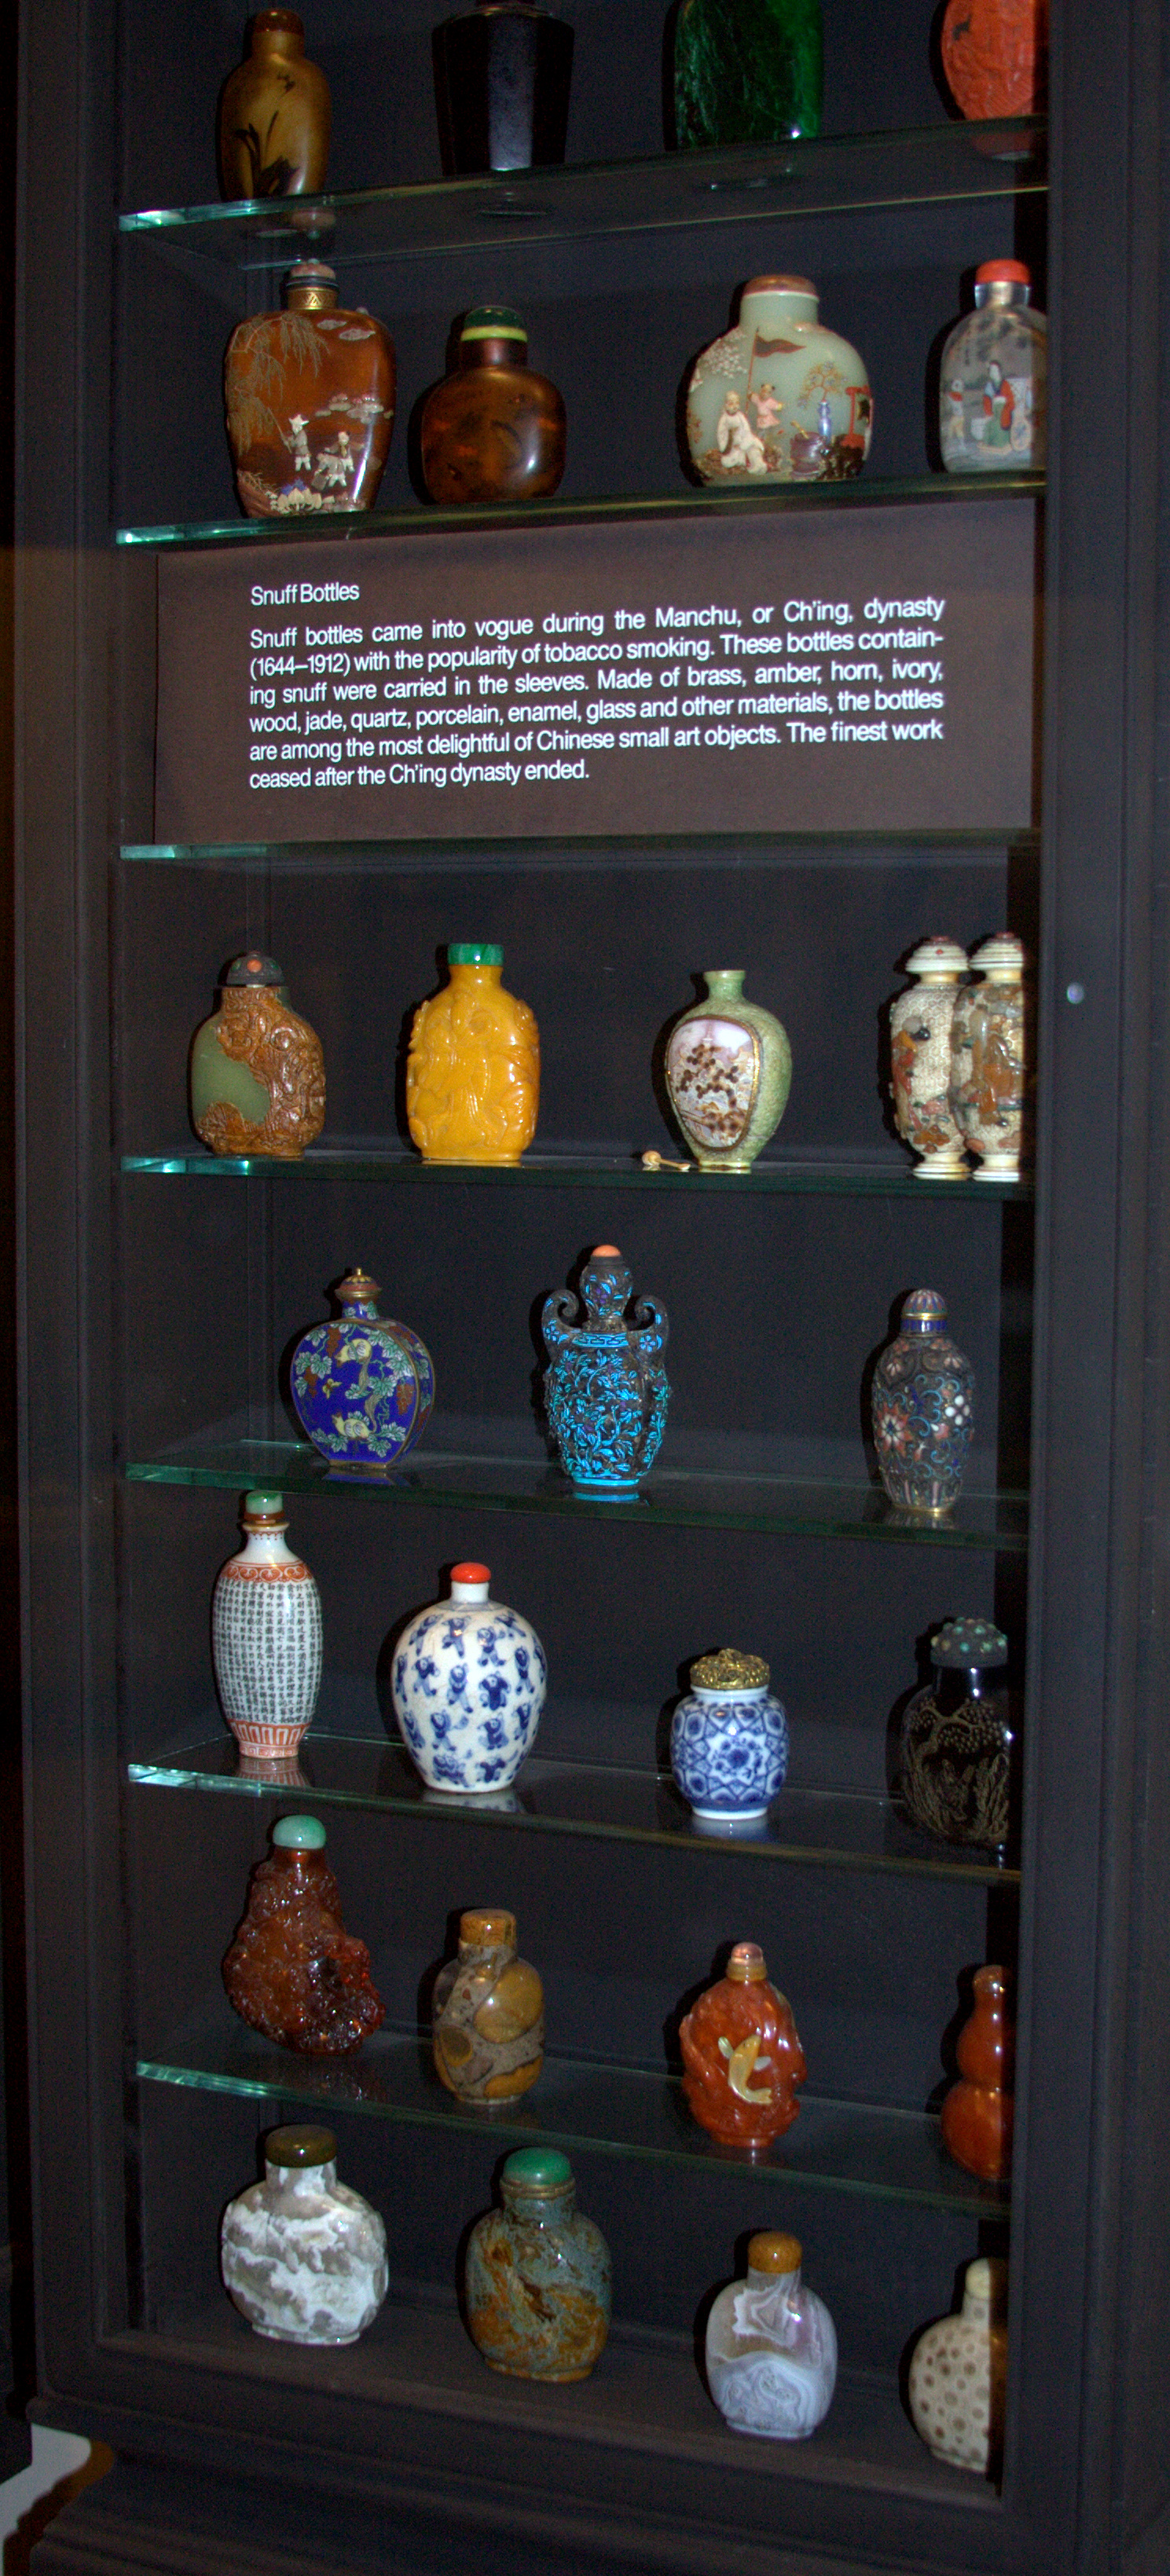 1589440098-8882-ff-bottles---AMNH-collection